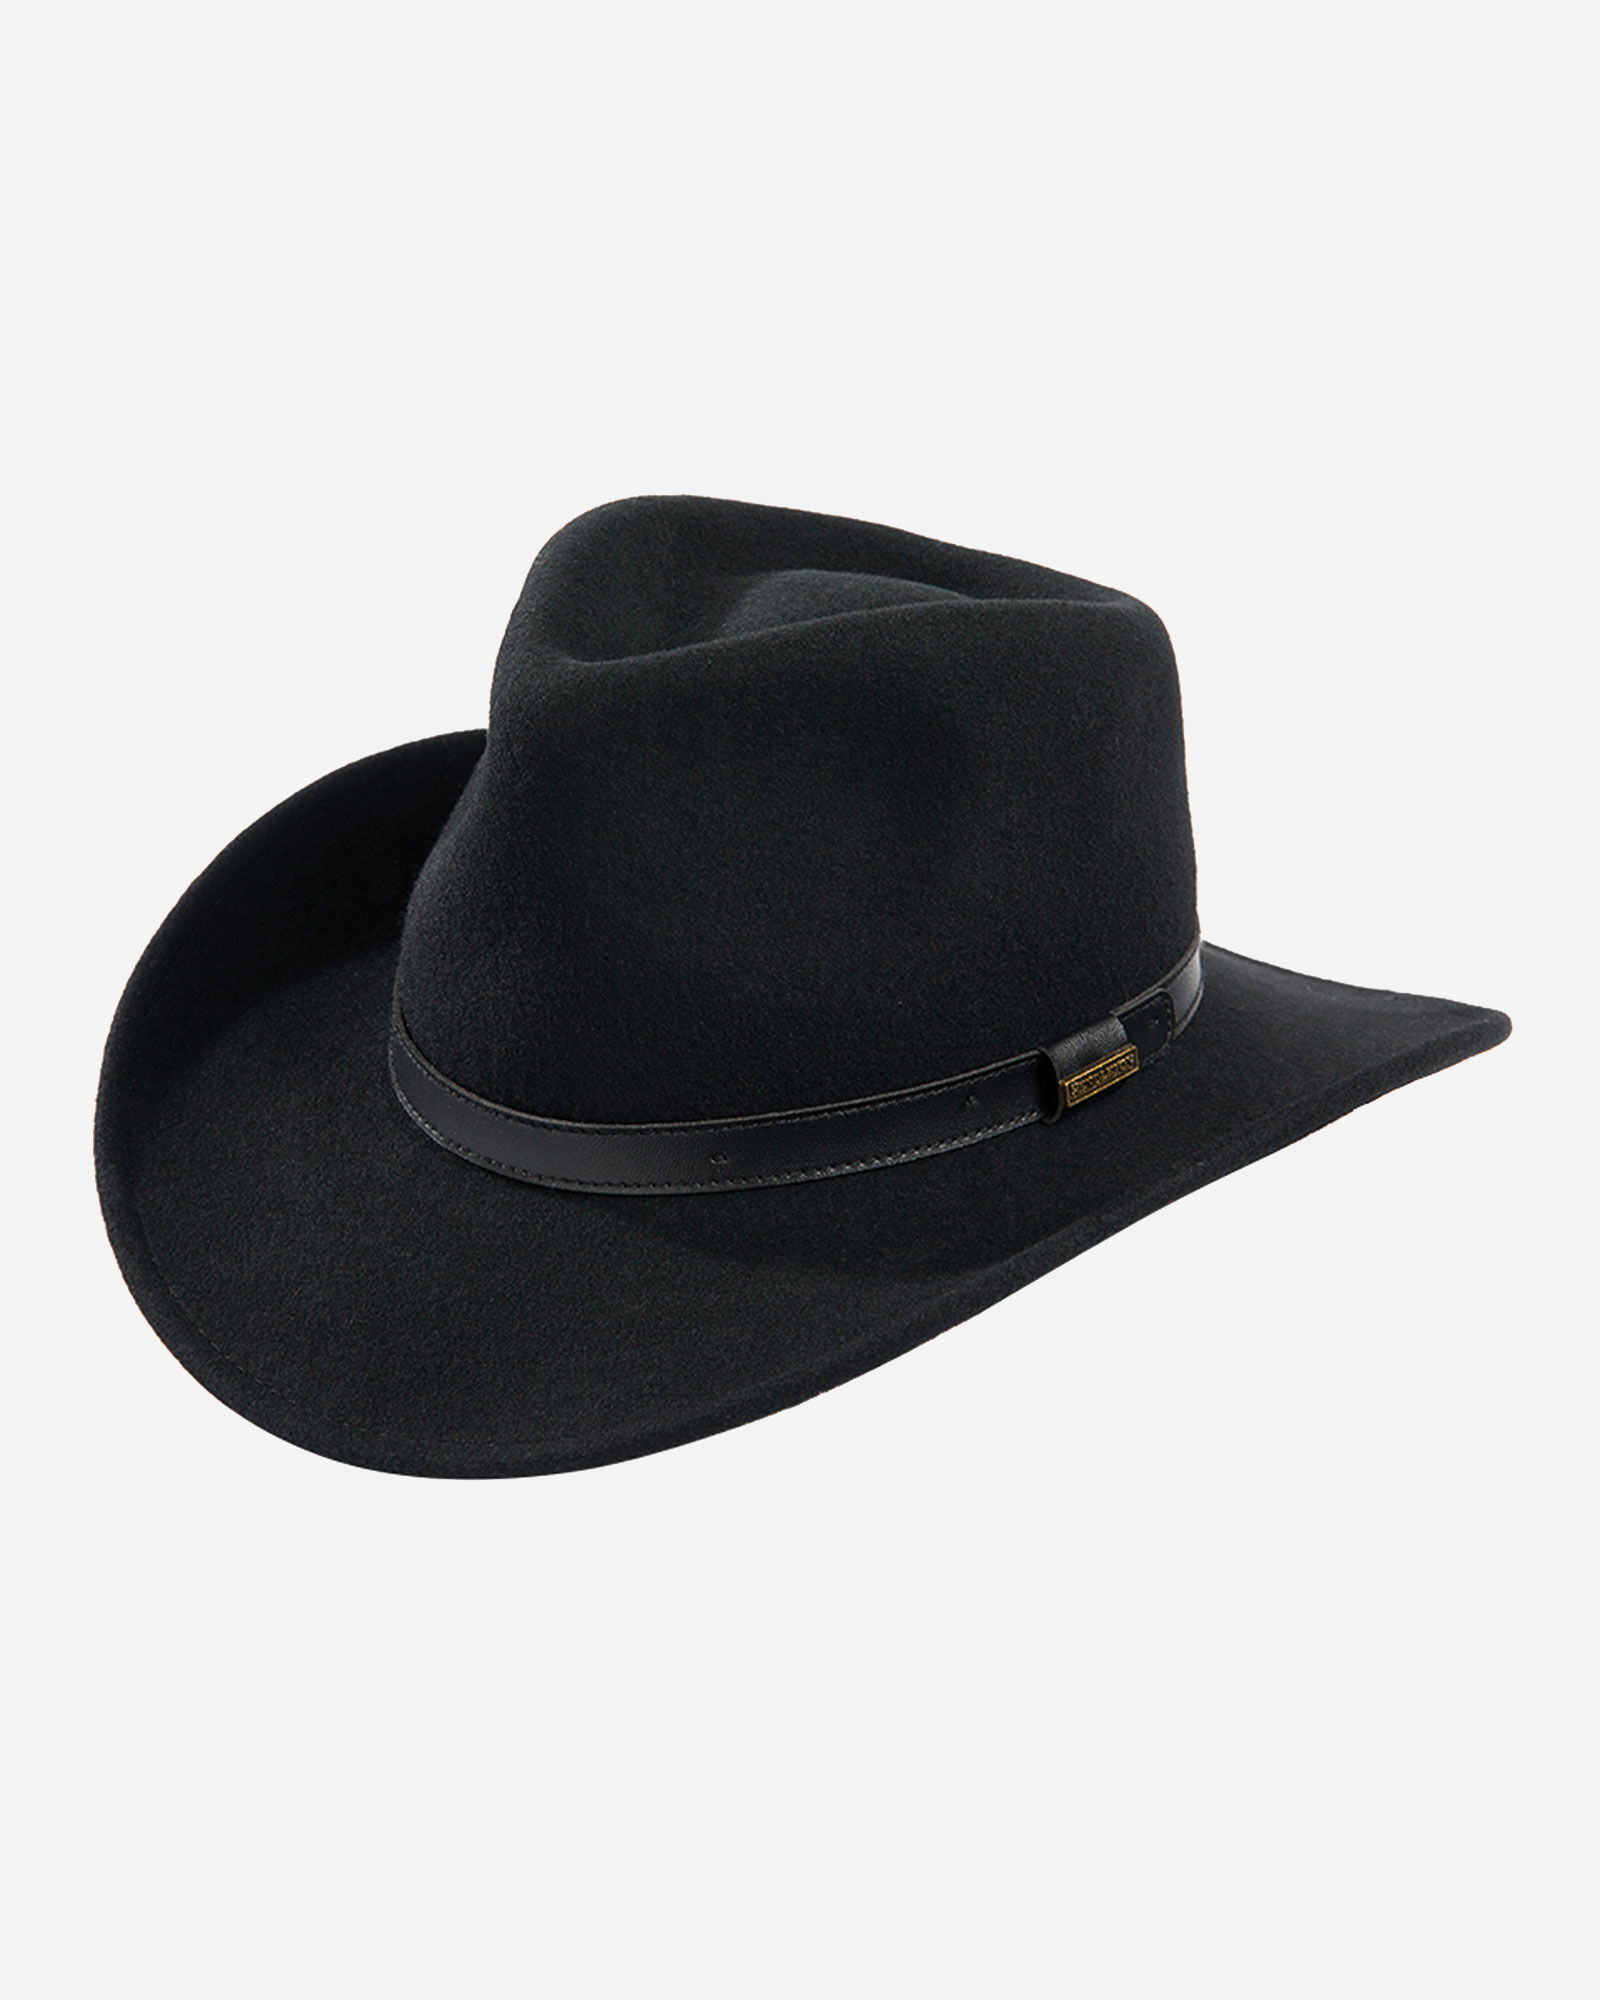 74388bc22 OUTBACK HAT